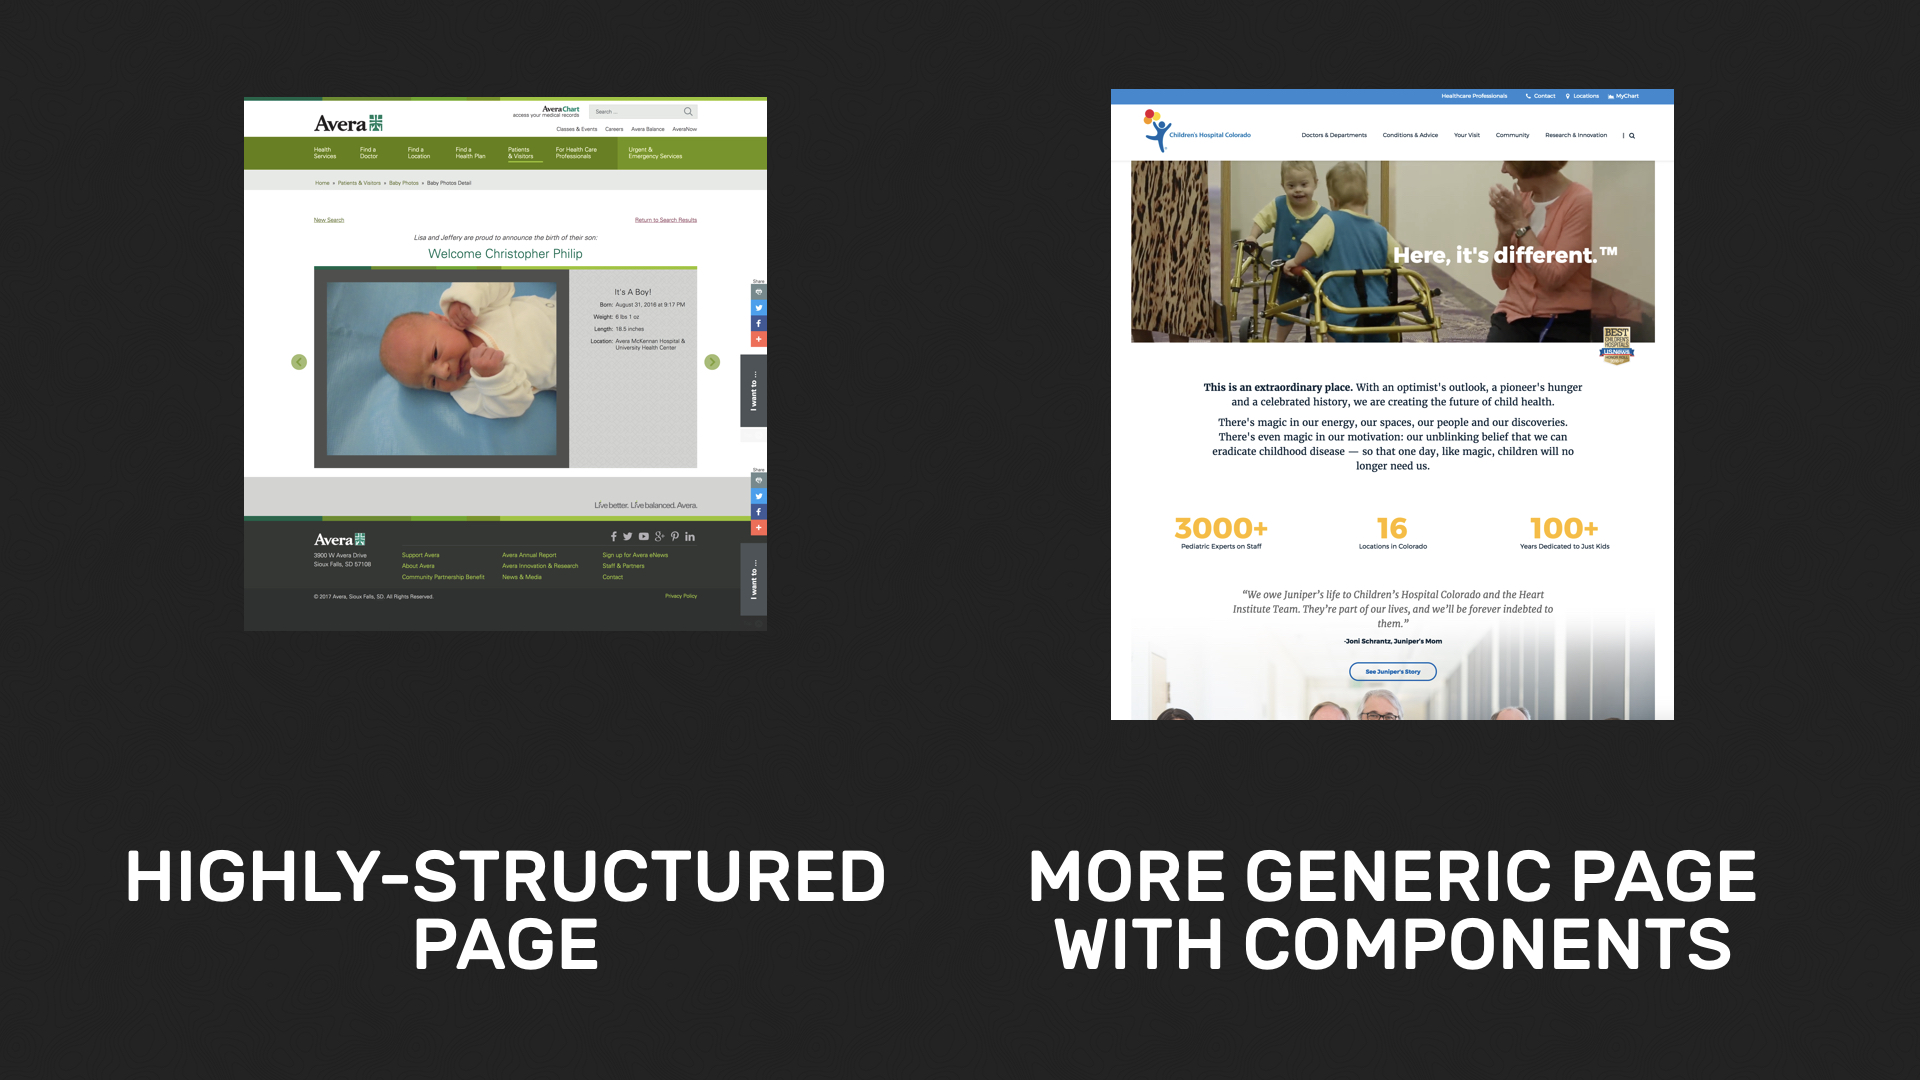 Highly-structured page side by side with a more generic page with components